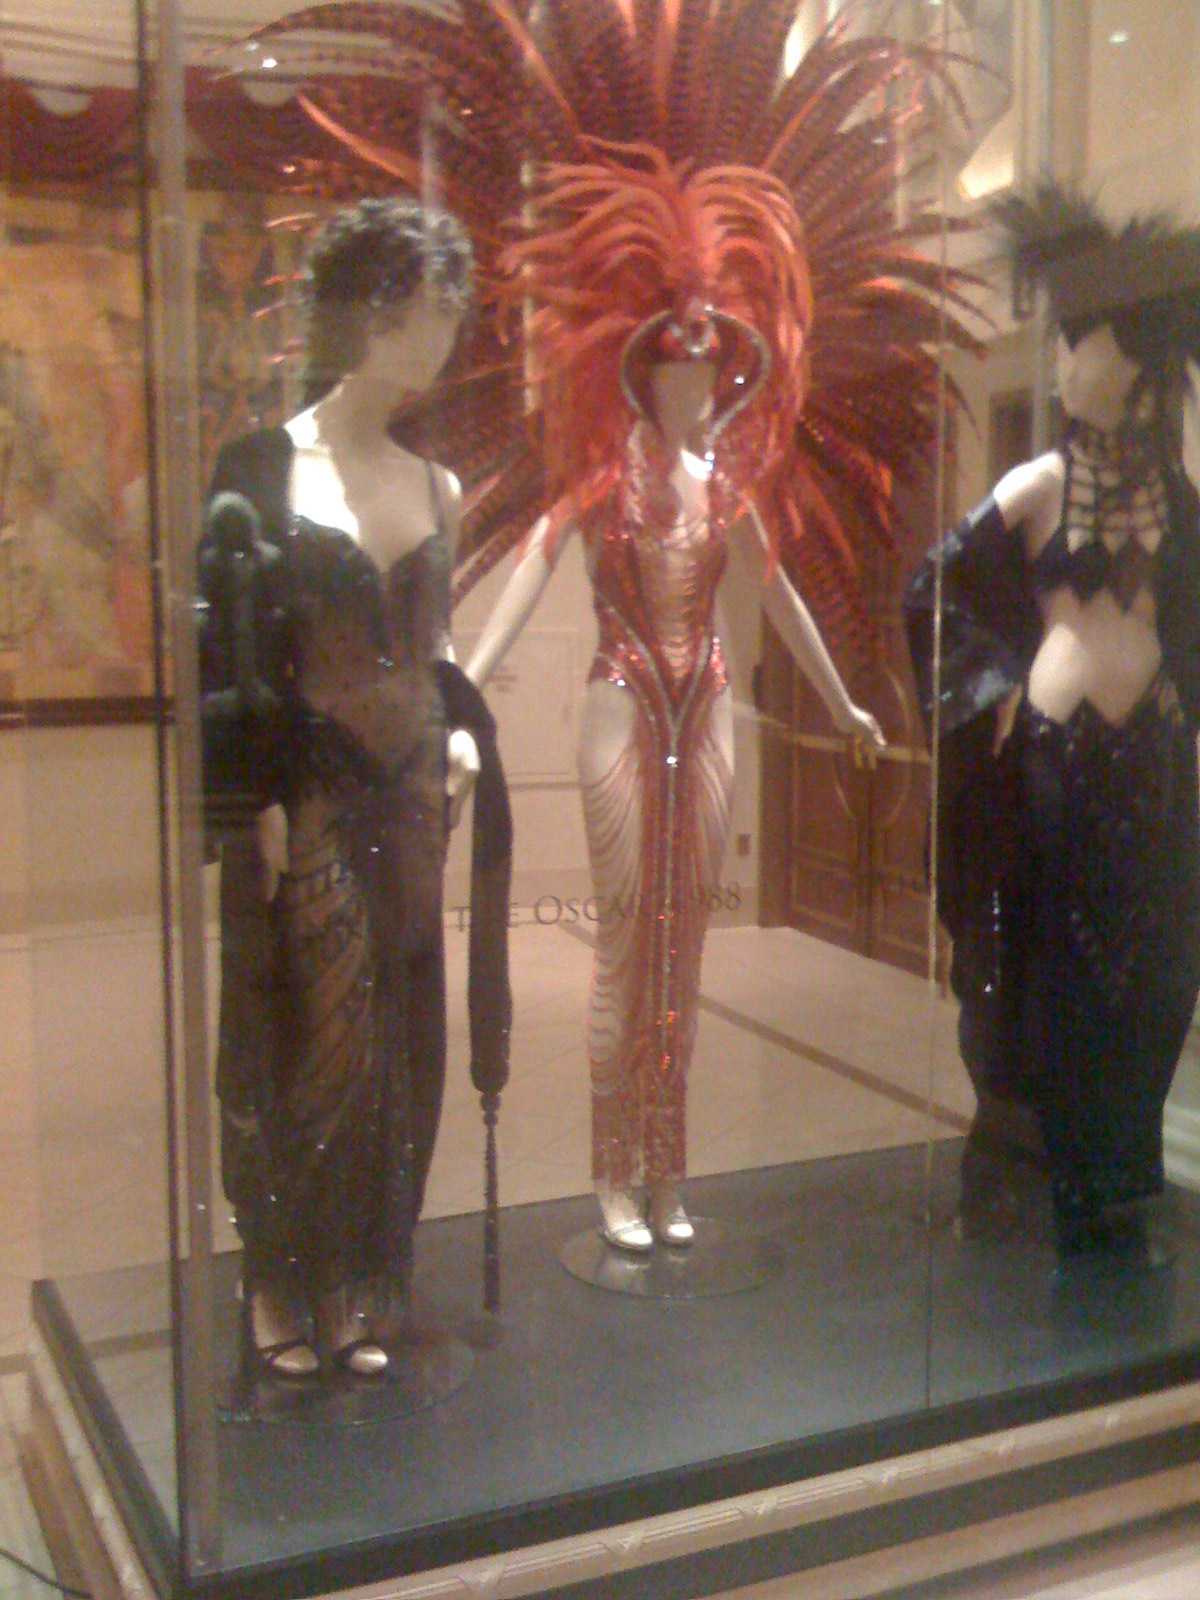 Cher's Outfits ( photo by Tasithoughts)